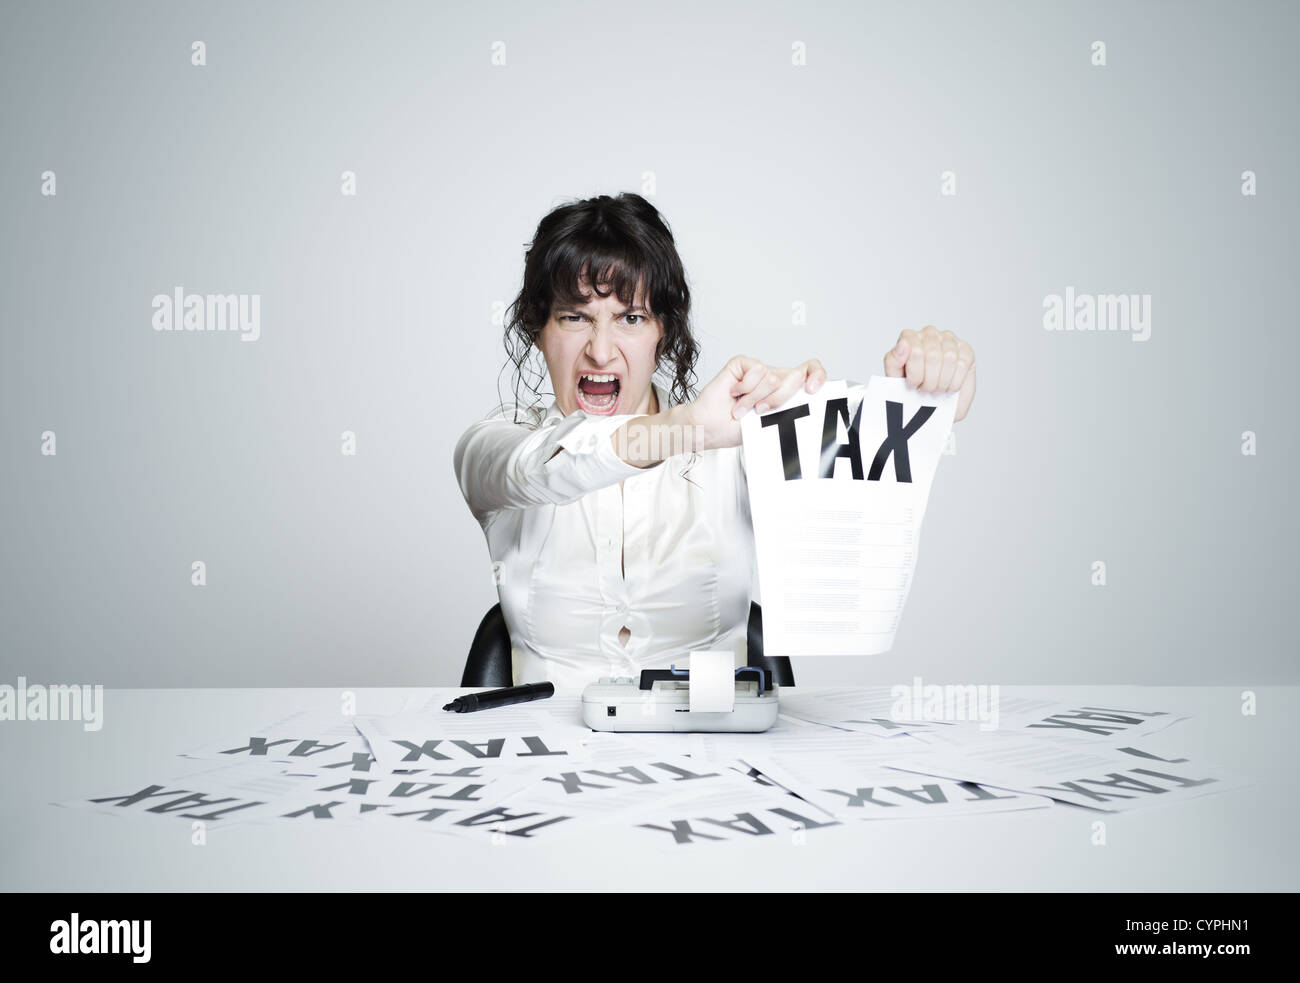 Young desperate woman at her paperwork-covered desk ripping up a tax form staring at the camera - Stock Image